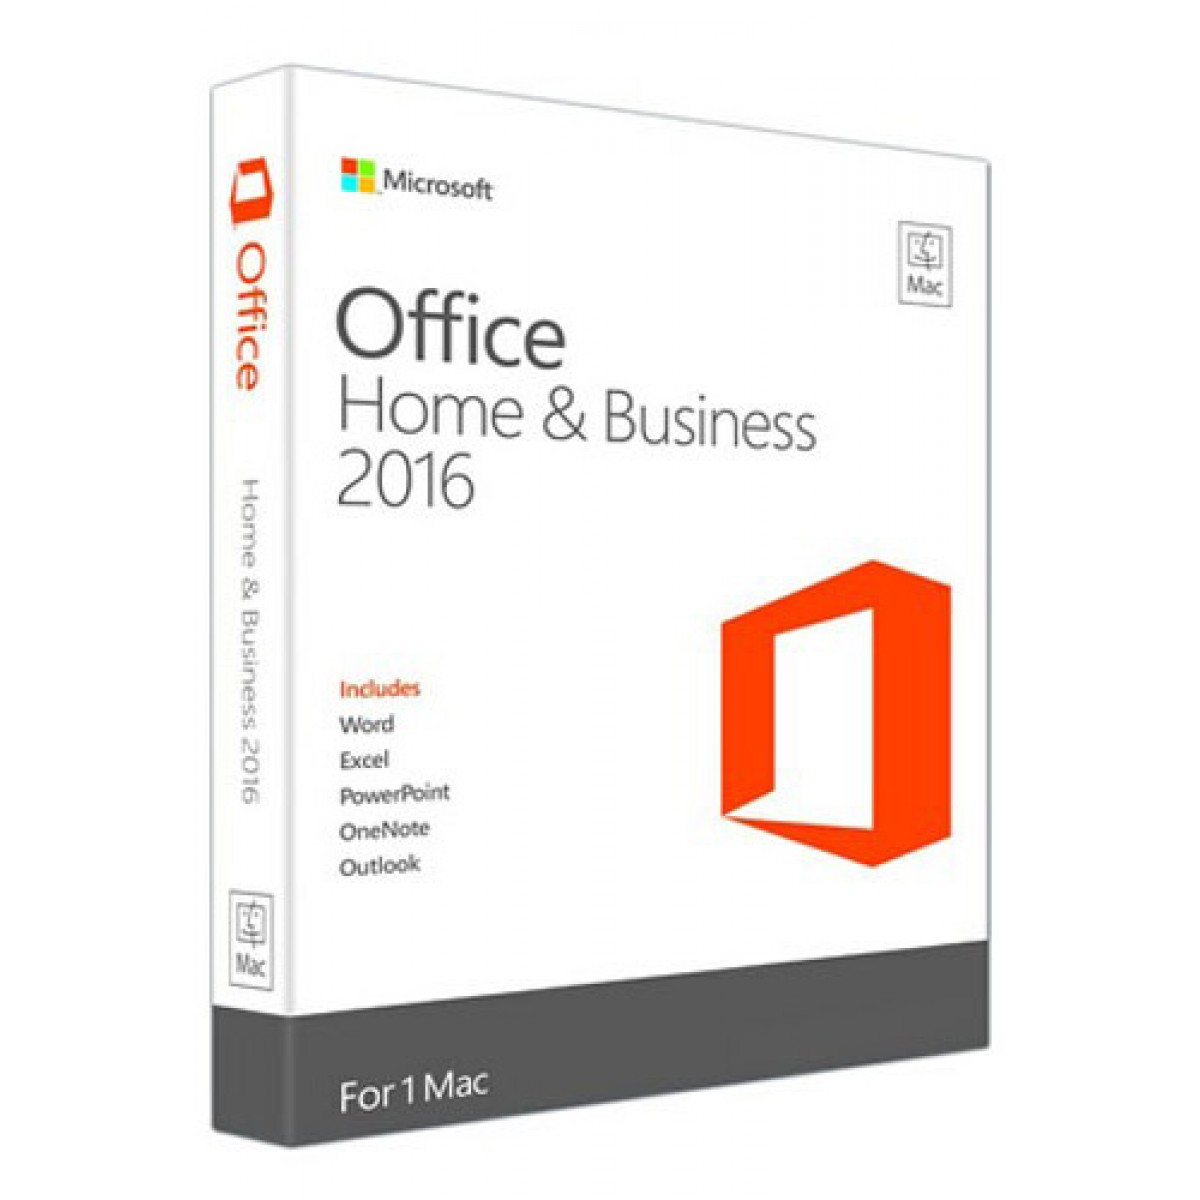 Office Home and Business 2016 32-bit/x64 English APAC EM DVD - T5D-02274